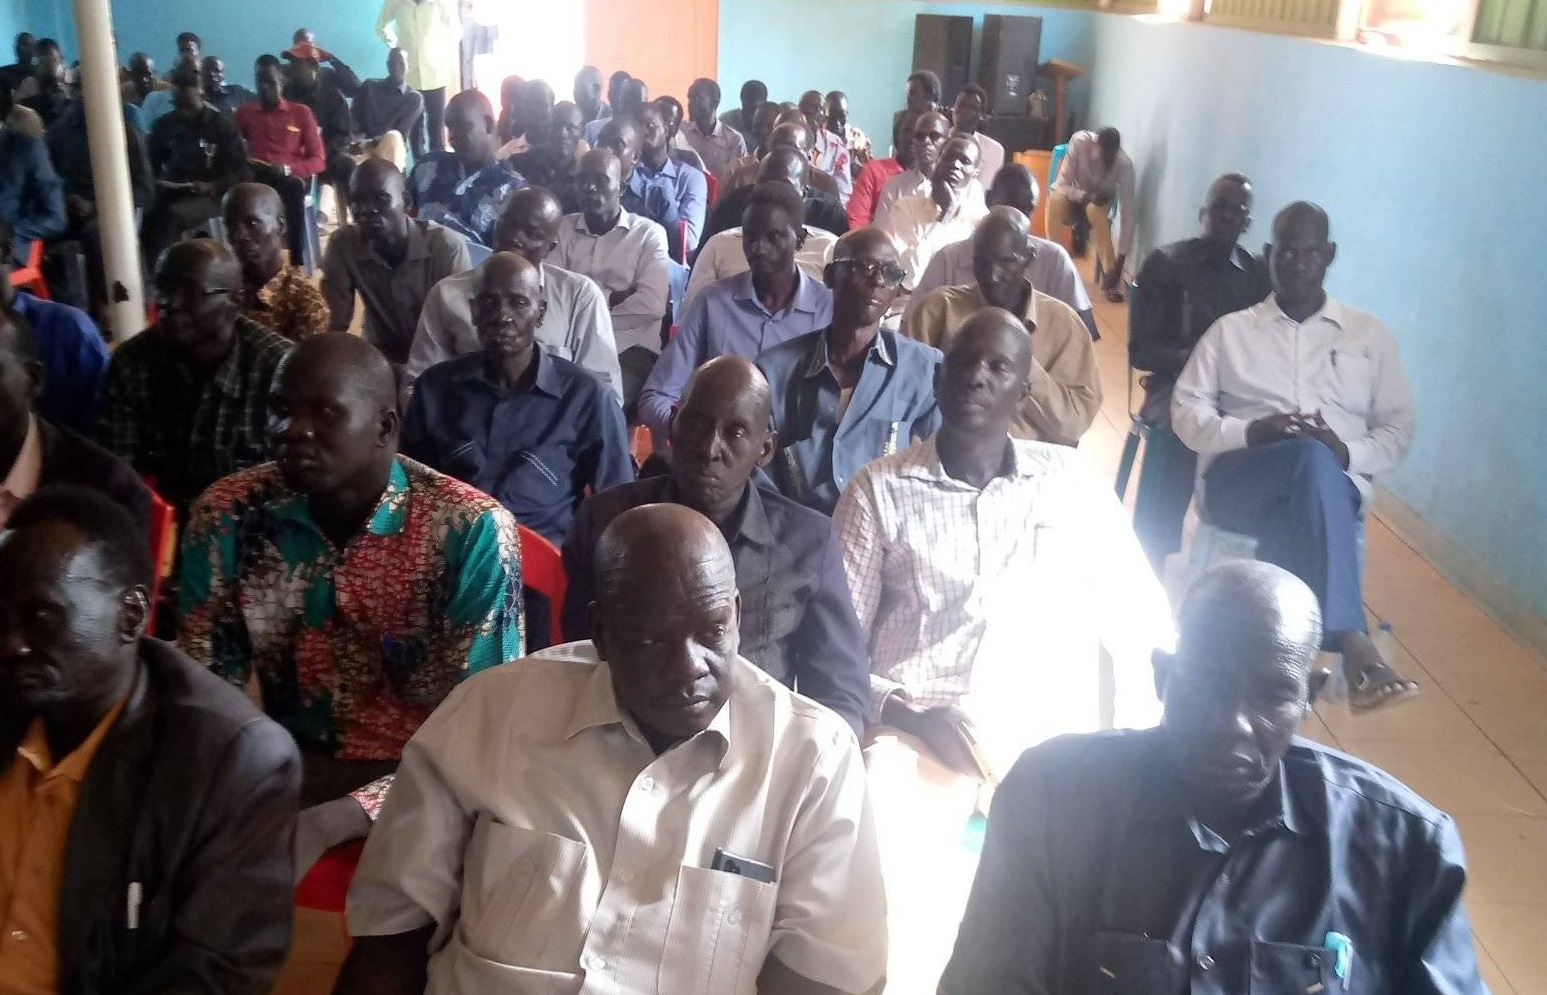 Members of the Leek community in Sudan attending election on Friday, September 18, 2020 [Photo obtained by Sudans Post]